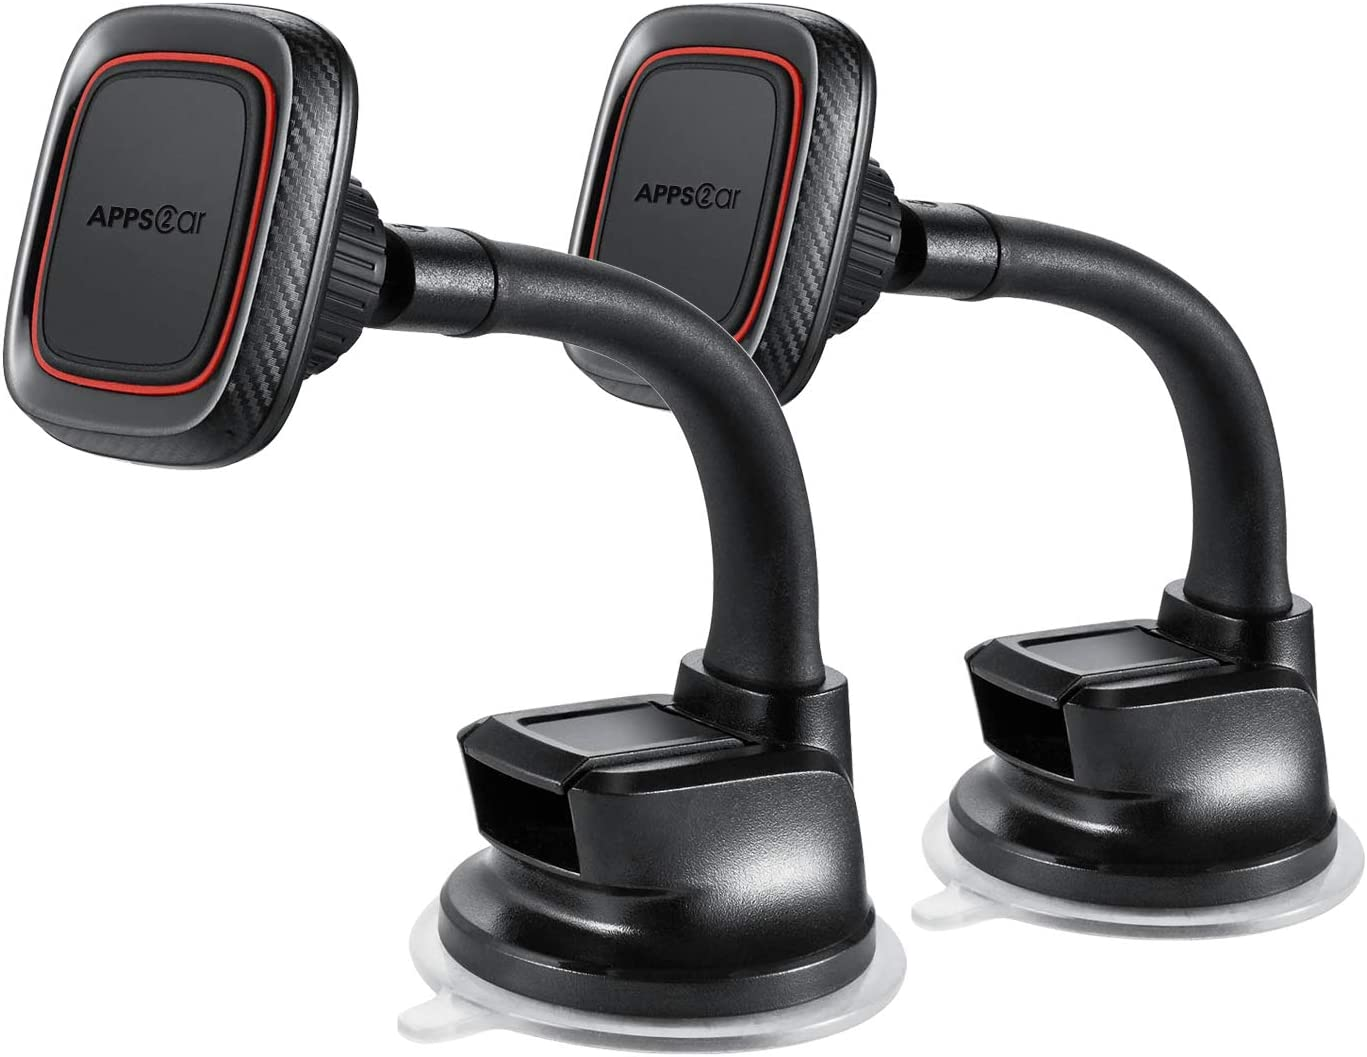 2 Pack Ultimate Flexible Arm Magnetic Dash Mount Windshield Phone Holder w//Strong Sticky Suction Cup Compatible with iPhone Xs Max X 8 7 Plus Samsung Galaxy S9 S8 Edge Note 8 Huawei P20 pro Sony Z5